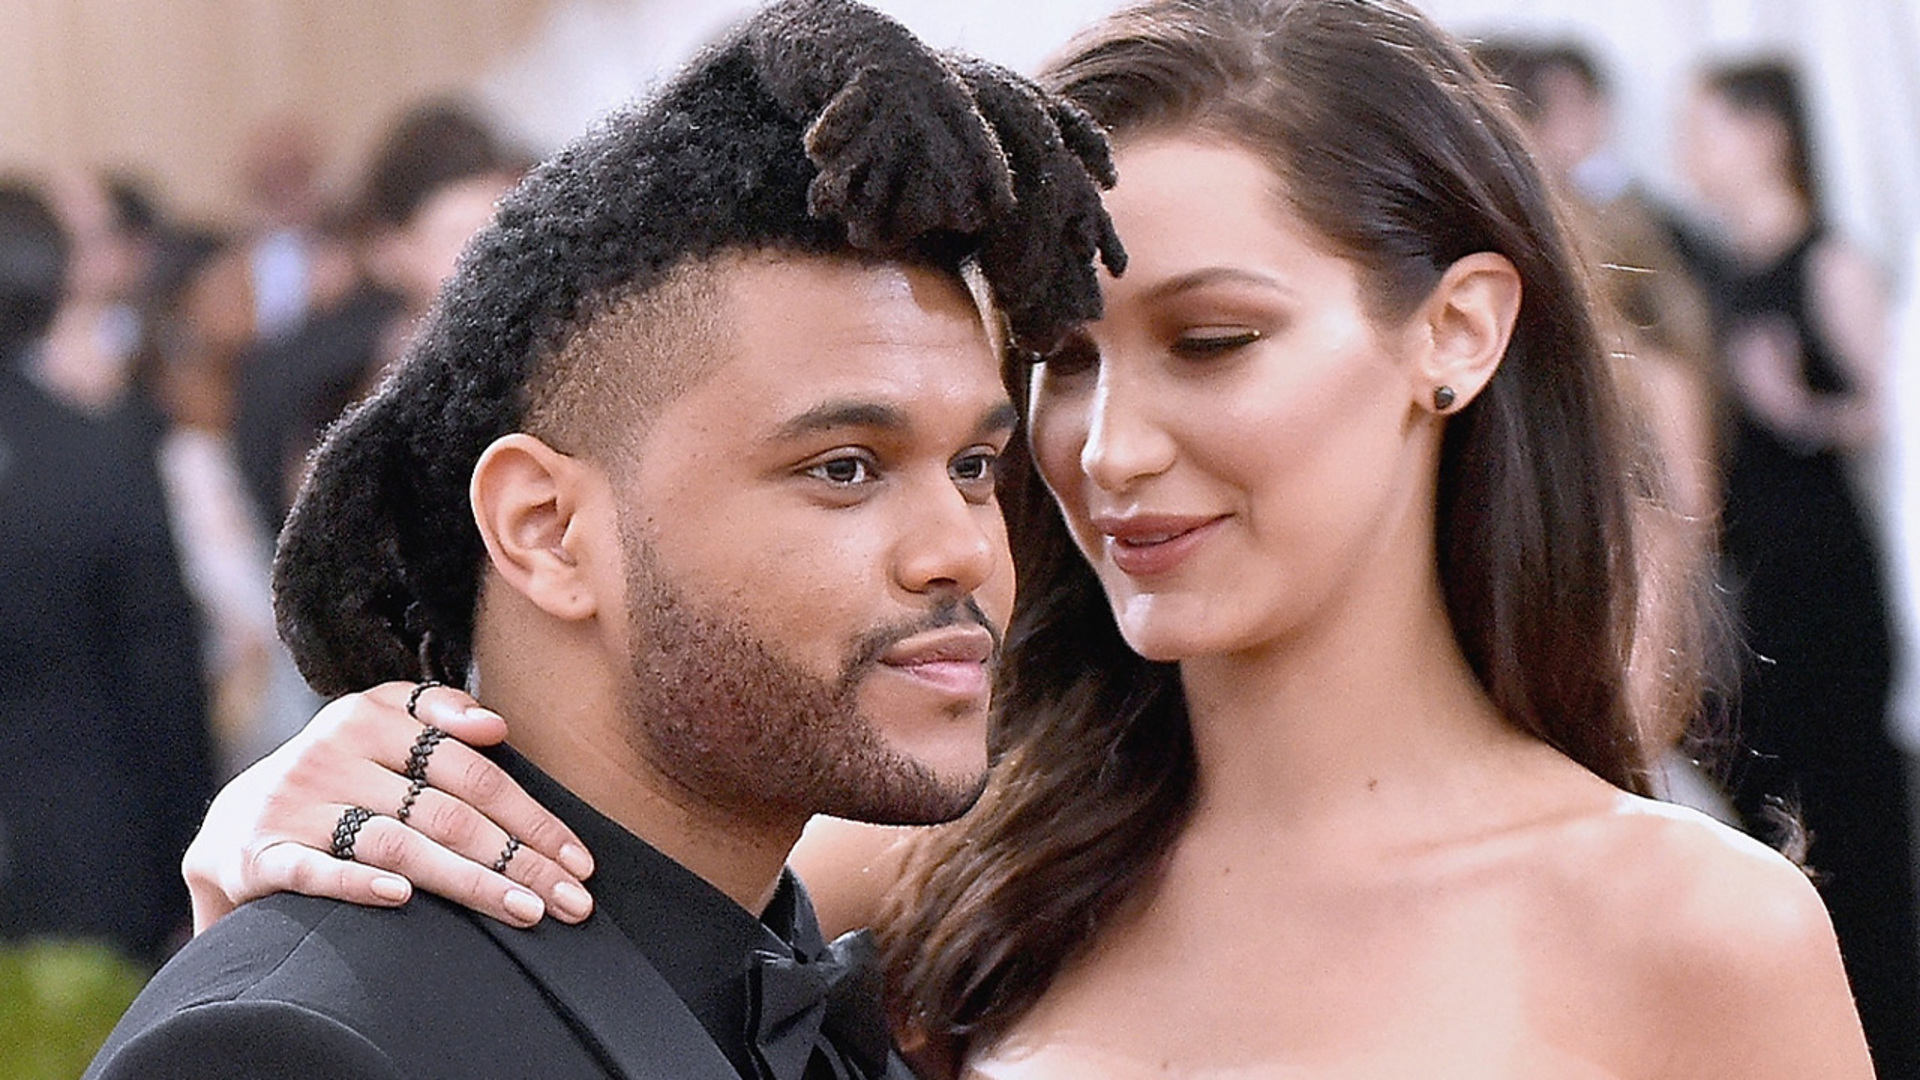 The Weeknd Debuts A Totally New Look On The Red Carpet